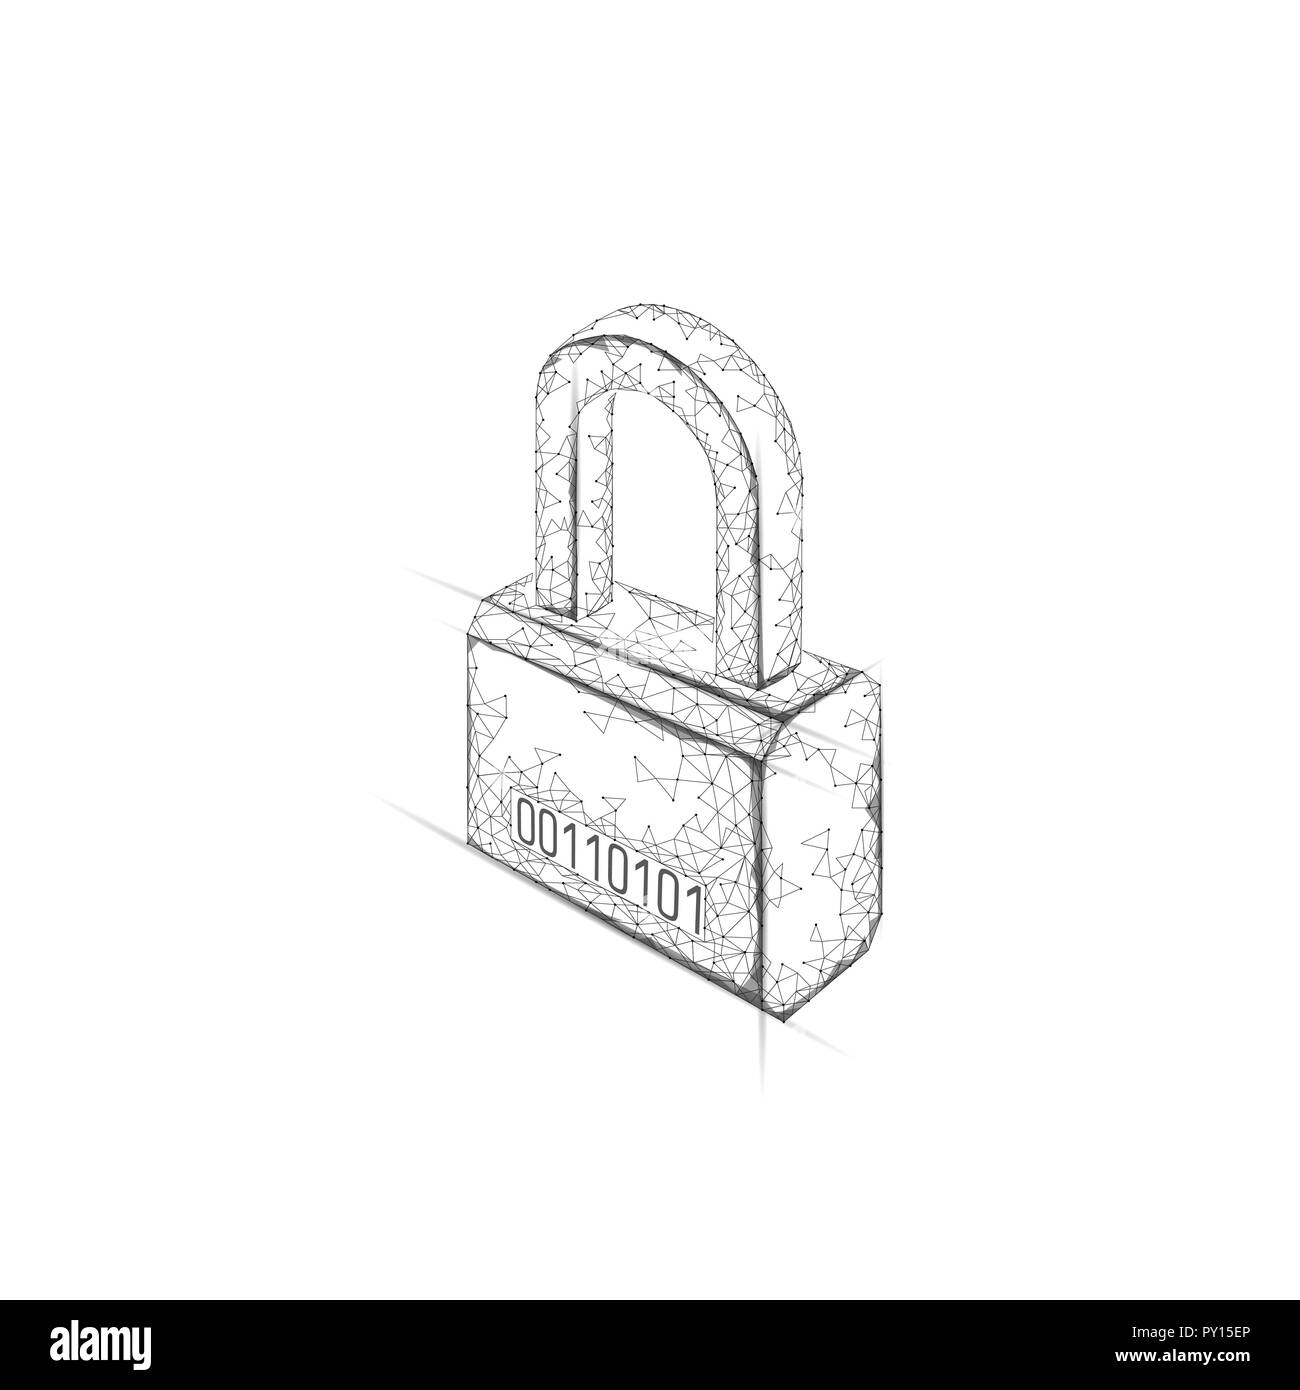 Cyber safety padlock on data mass. Internet security lock information privacy low poly polygonal future innovation technology network concept vector illustration art Stock Vector